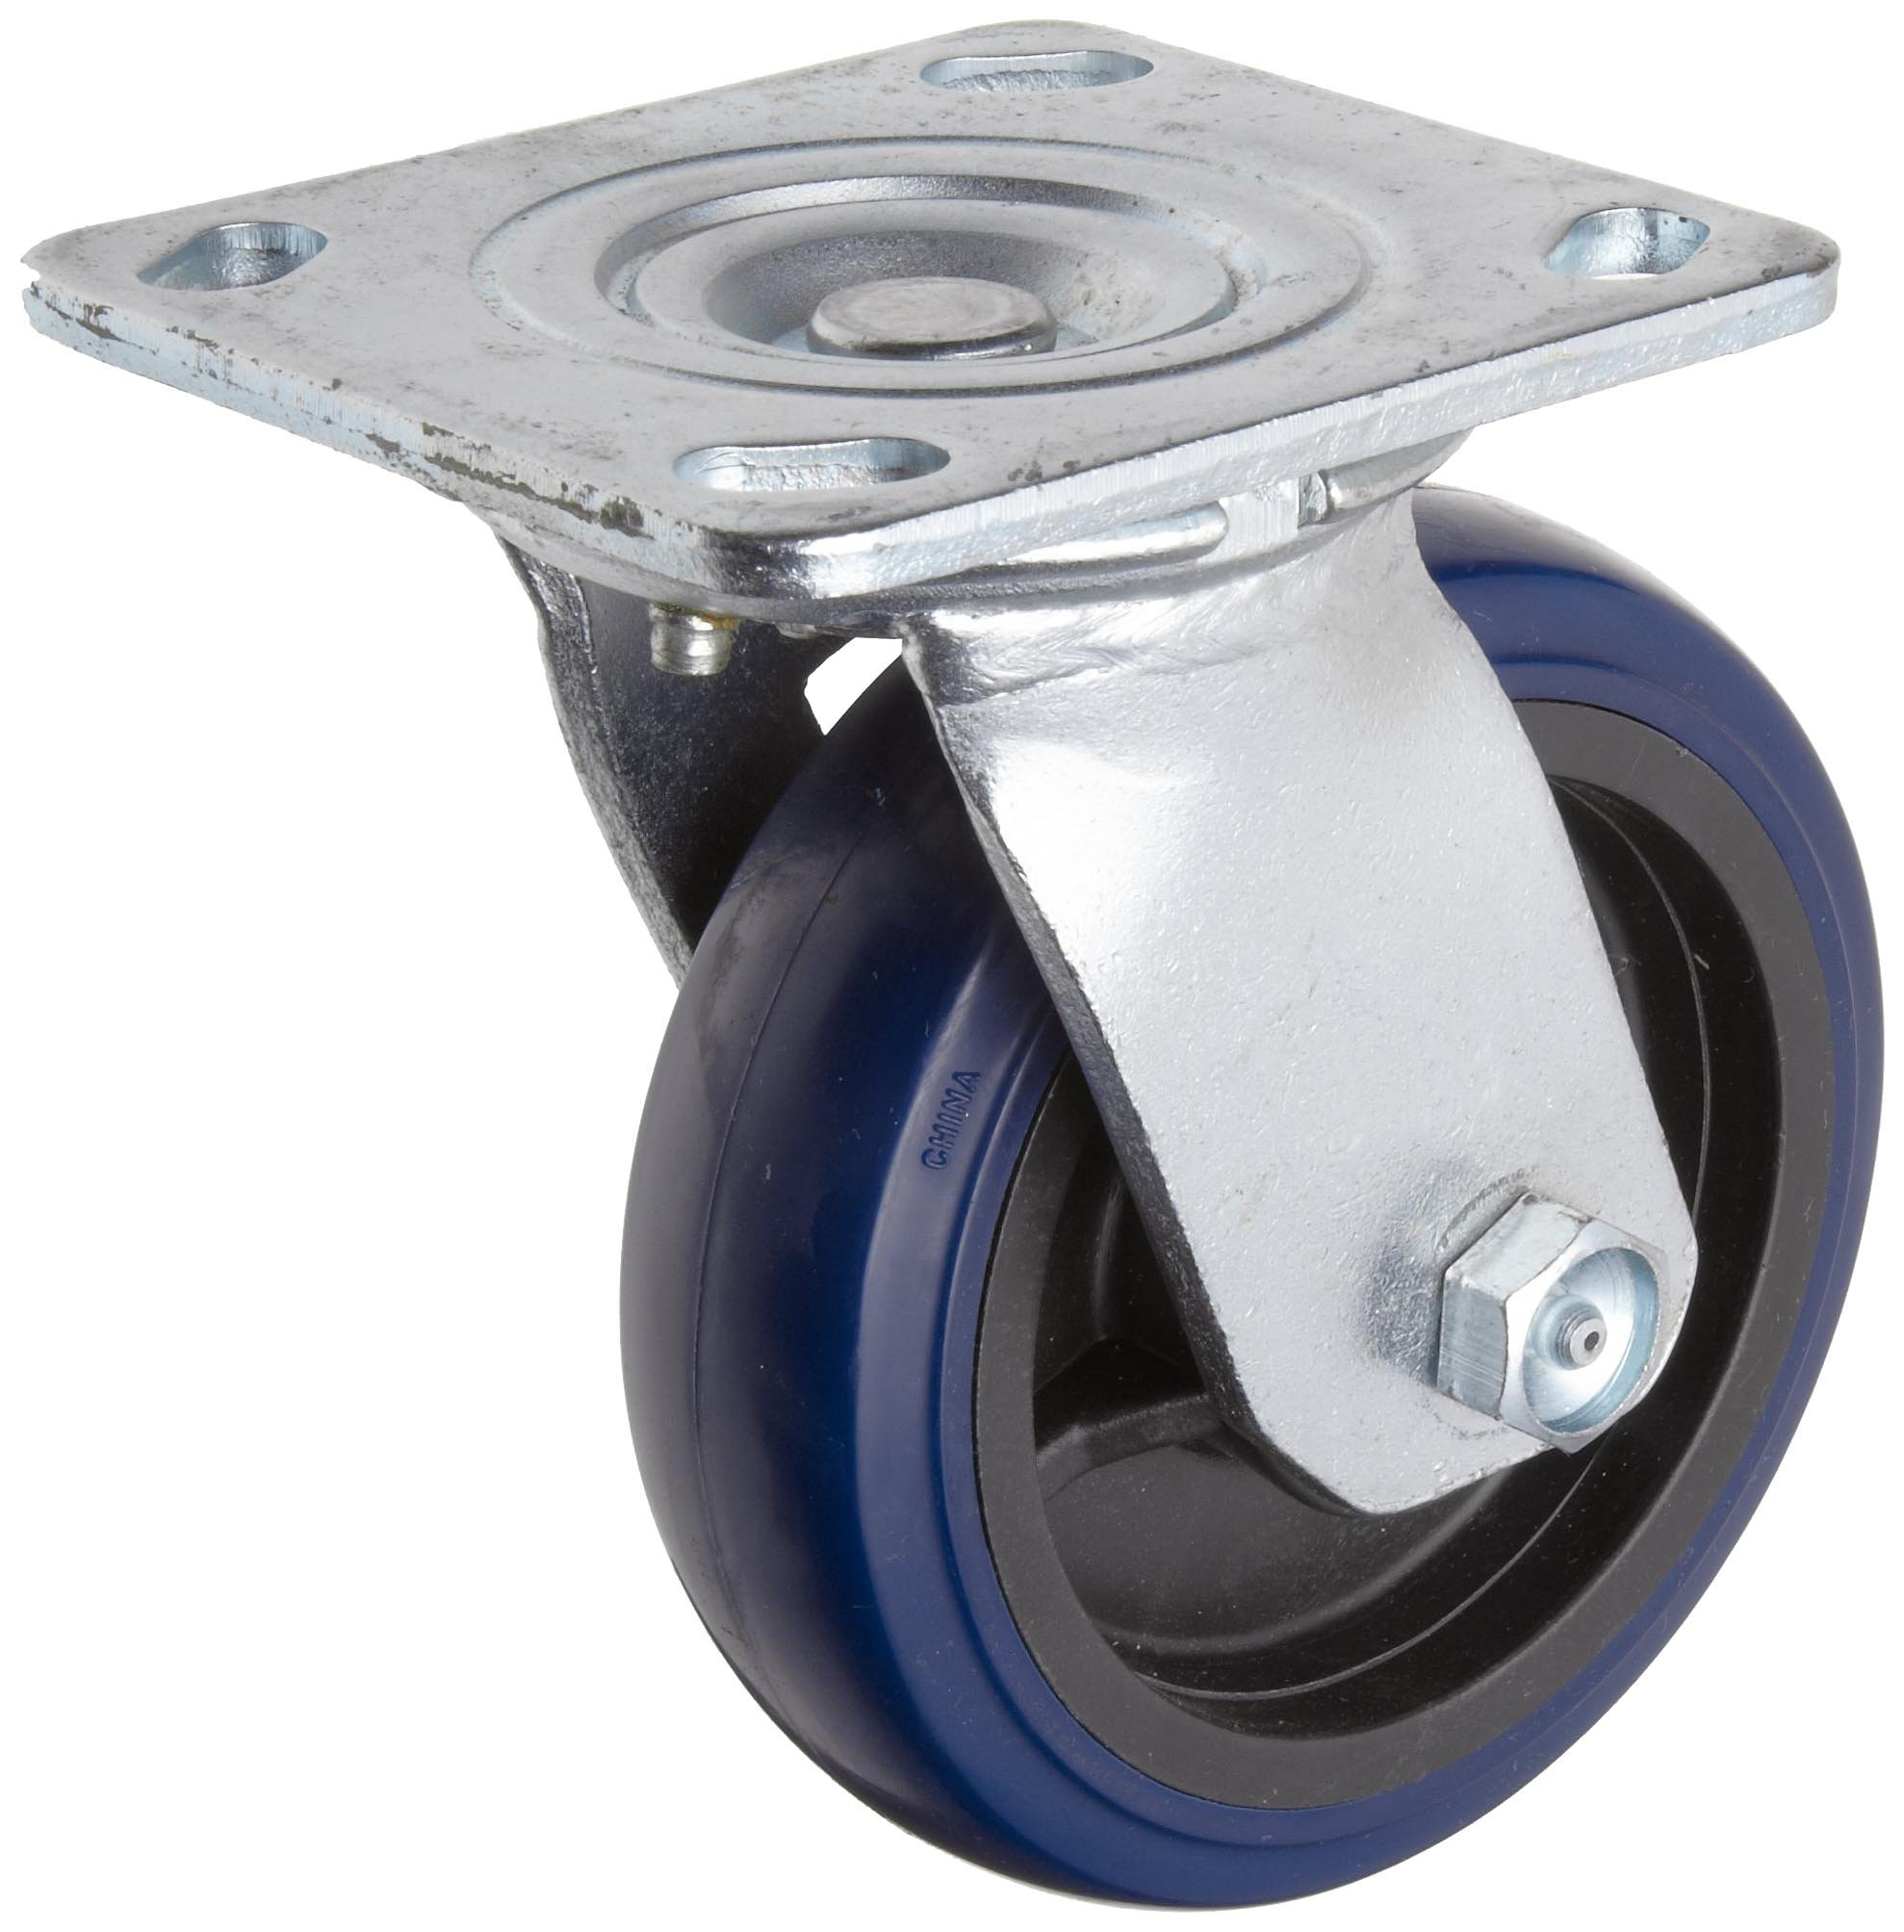 RWM Casters S65 Series Plate Caster, Swivel, Kingpinless, Rubber on Aluminum Wheel, Stainless Steel Plate, Stainless Steel Ball Bearing, 700 lbs Capacity, 4'' Wheel Dia, 2'' Wheel Width, 5-5/8'' Mount Height, 4-1/2'' Plate Length, 4'' Plate Width by RWM Casters